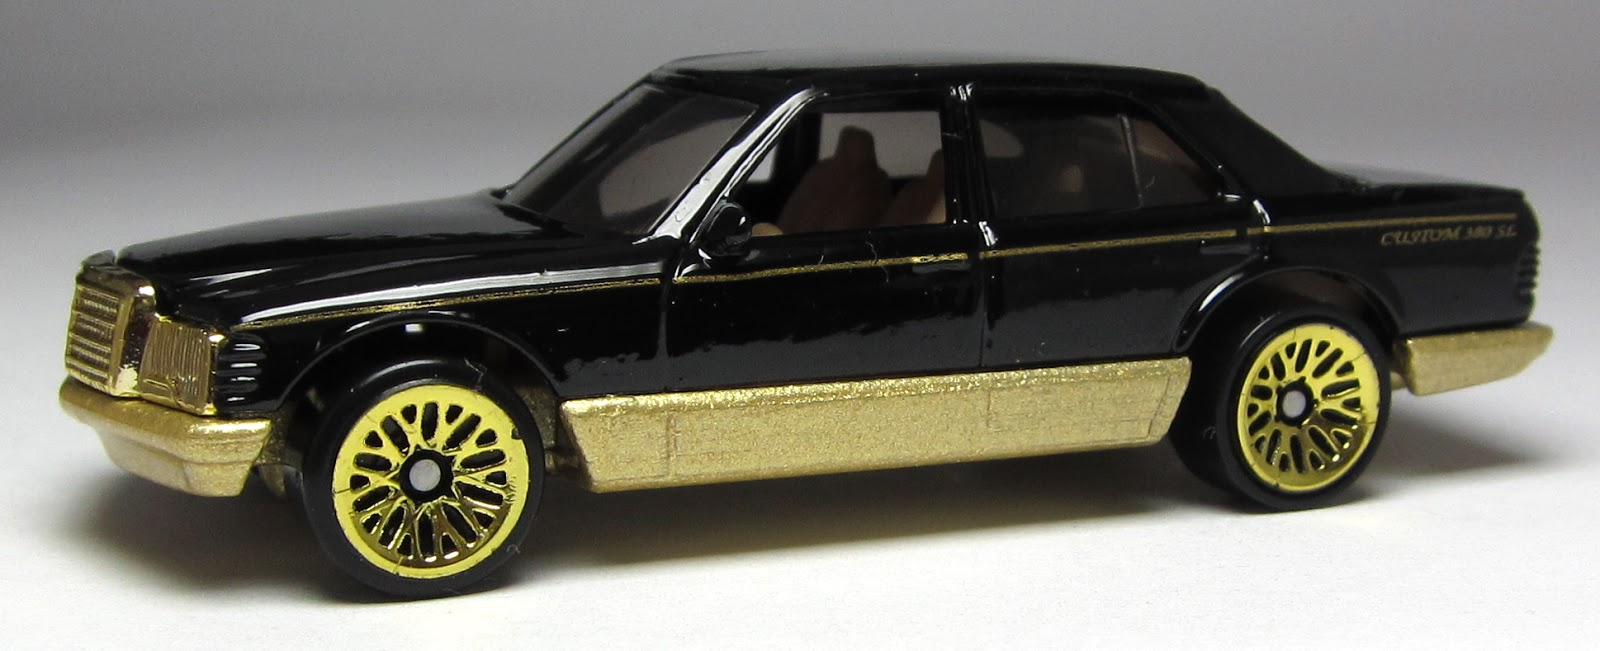 Model of the day hot wheels mercedes benz 380sel in black for Hot wheels mercedes benz